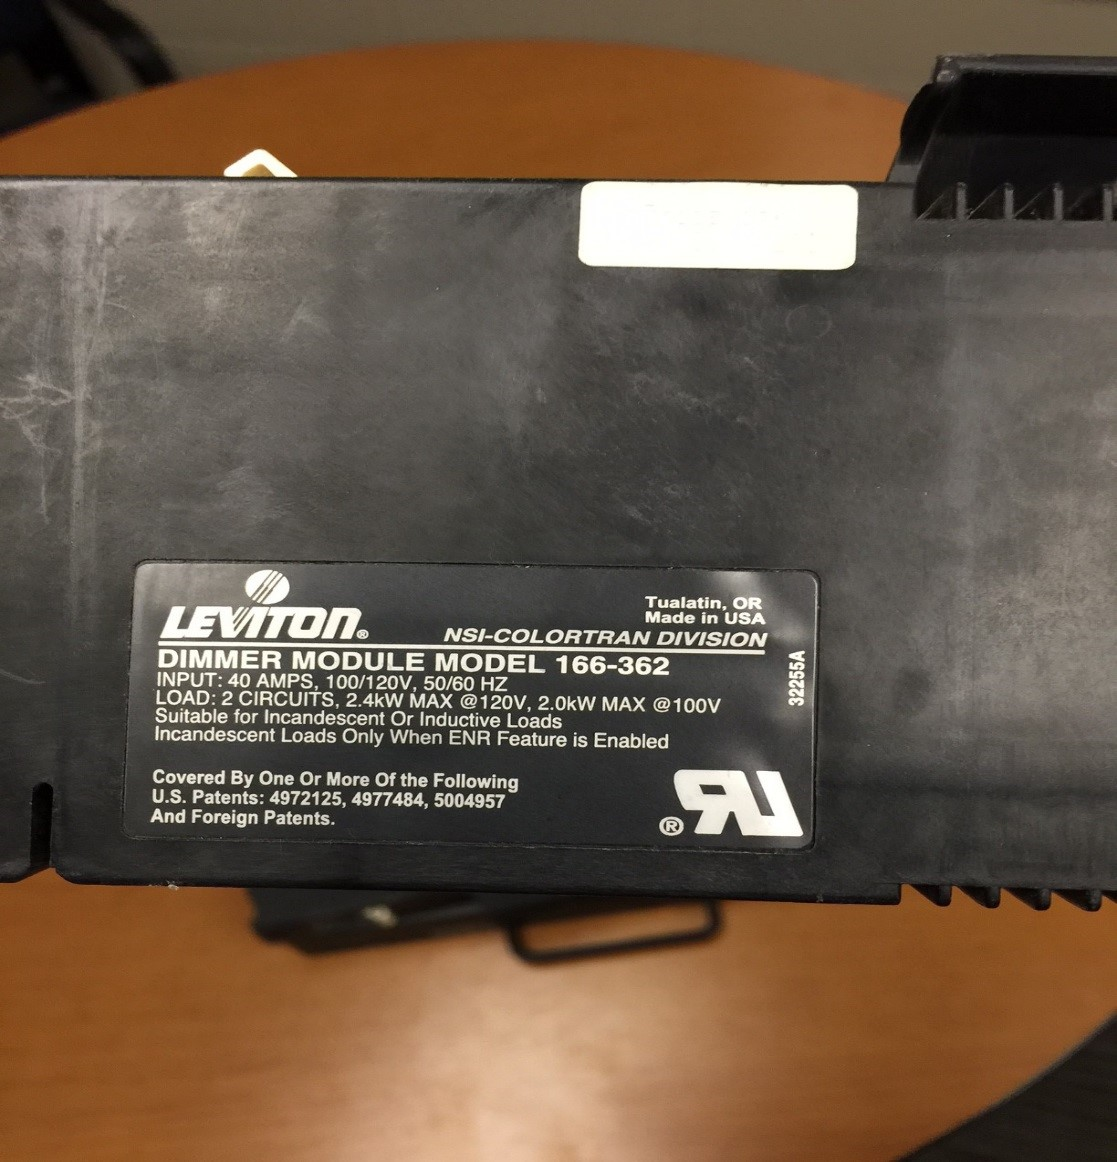 Leviton Dimmer Module Model 166-362 (Colortran ENR Dimmer, NSI Topaz ...